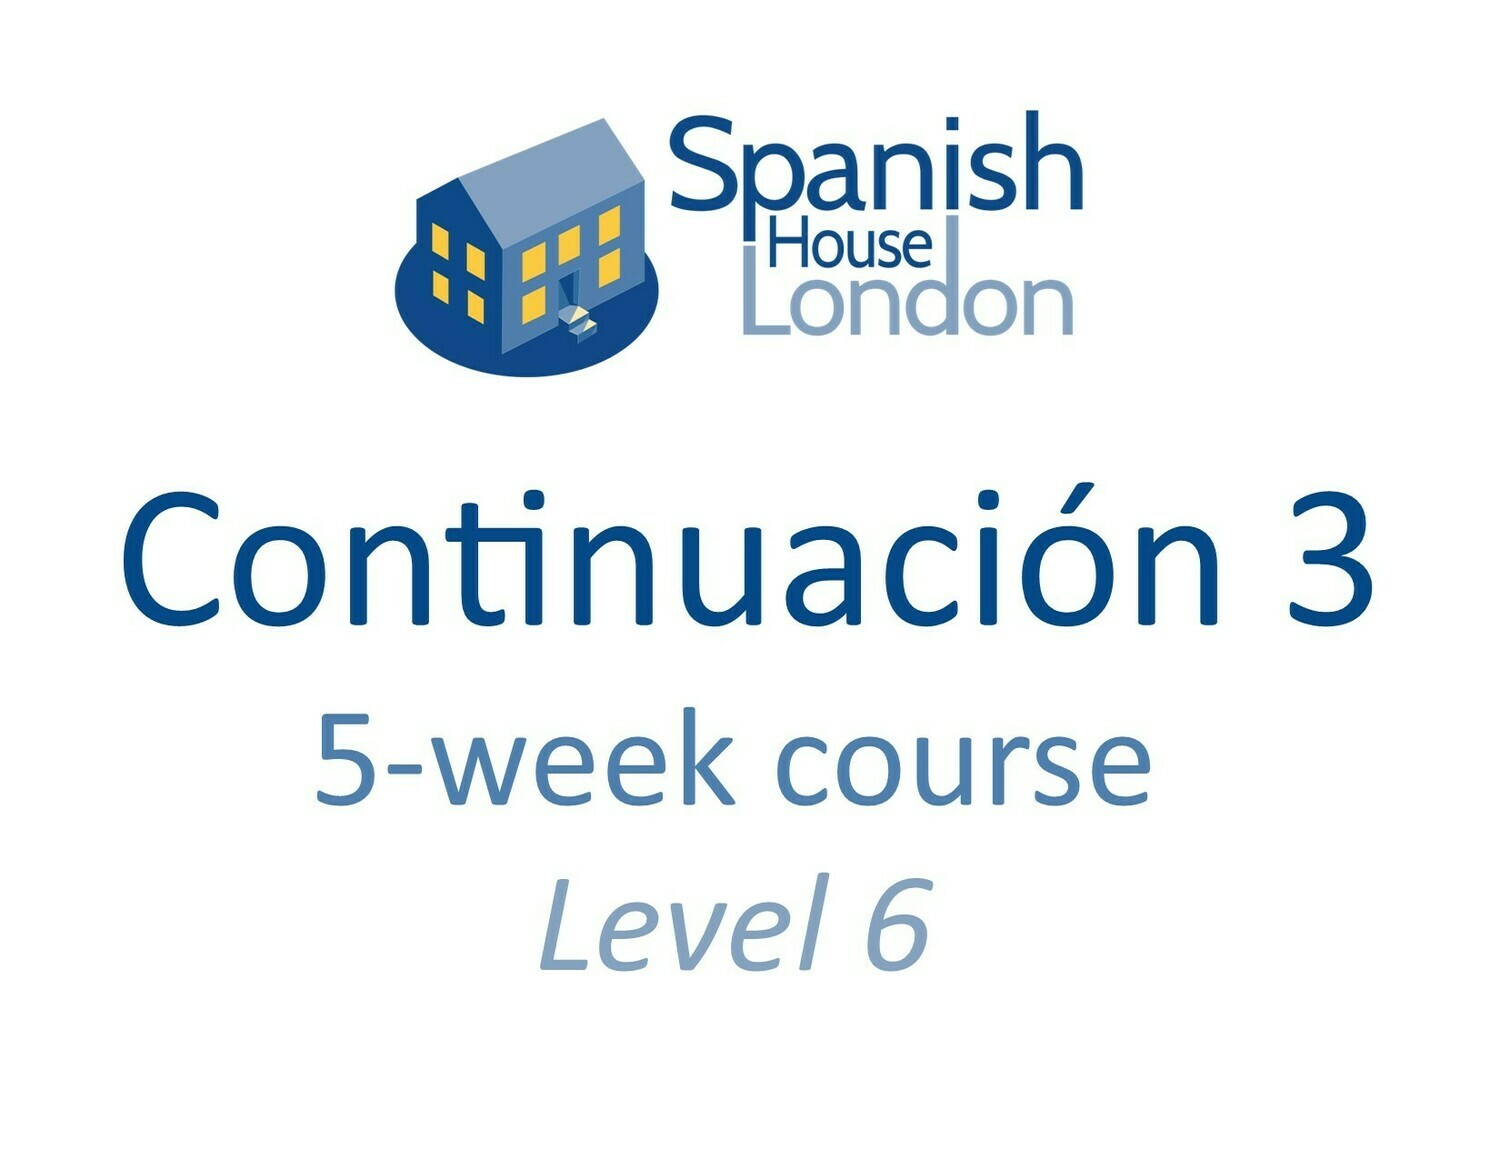 Continuacion 3 Five-Week Intensive Course starting on 13th July at 6pm